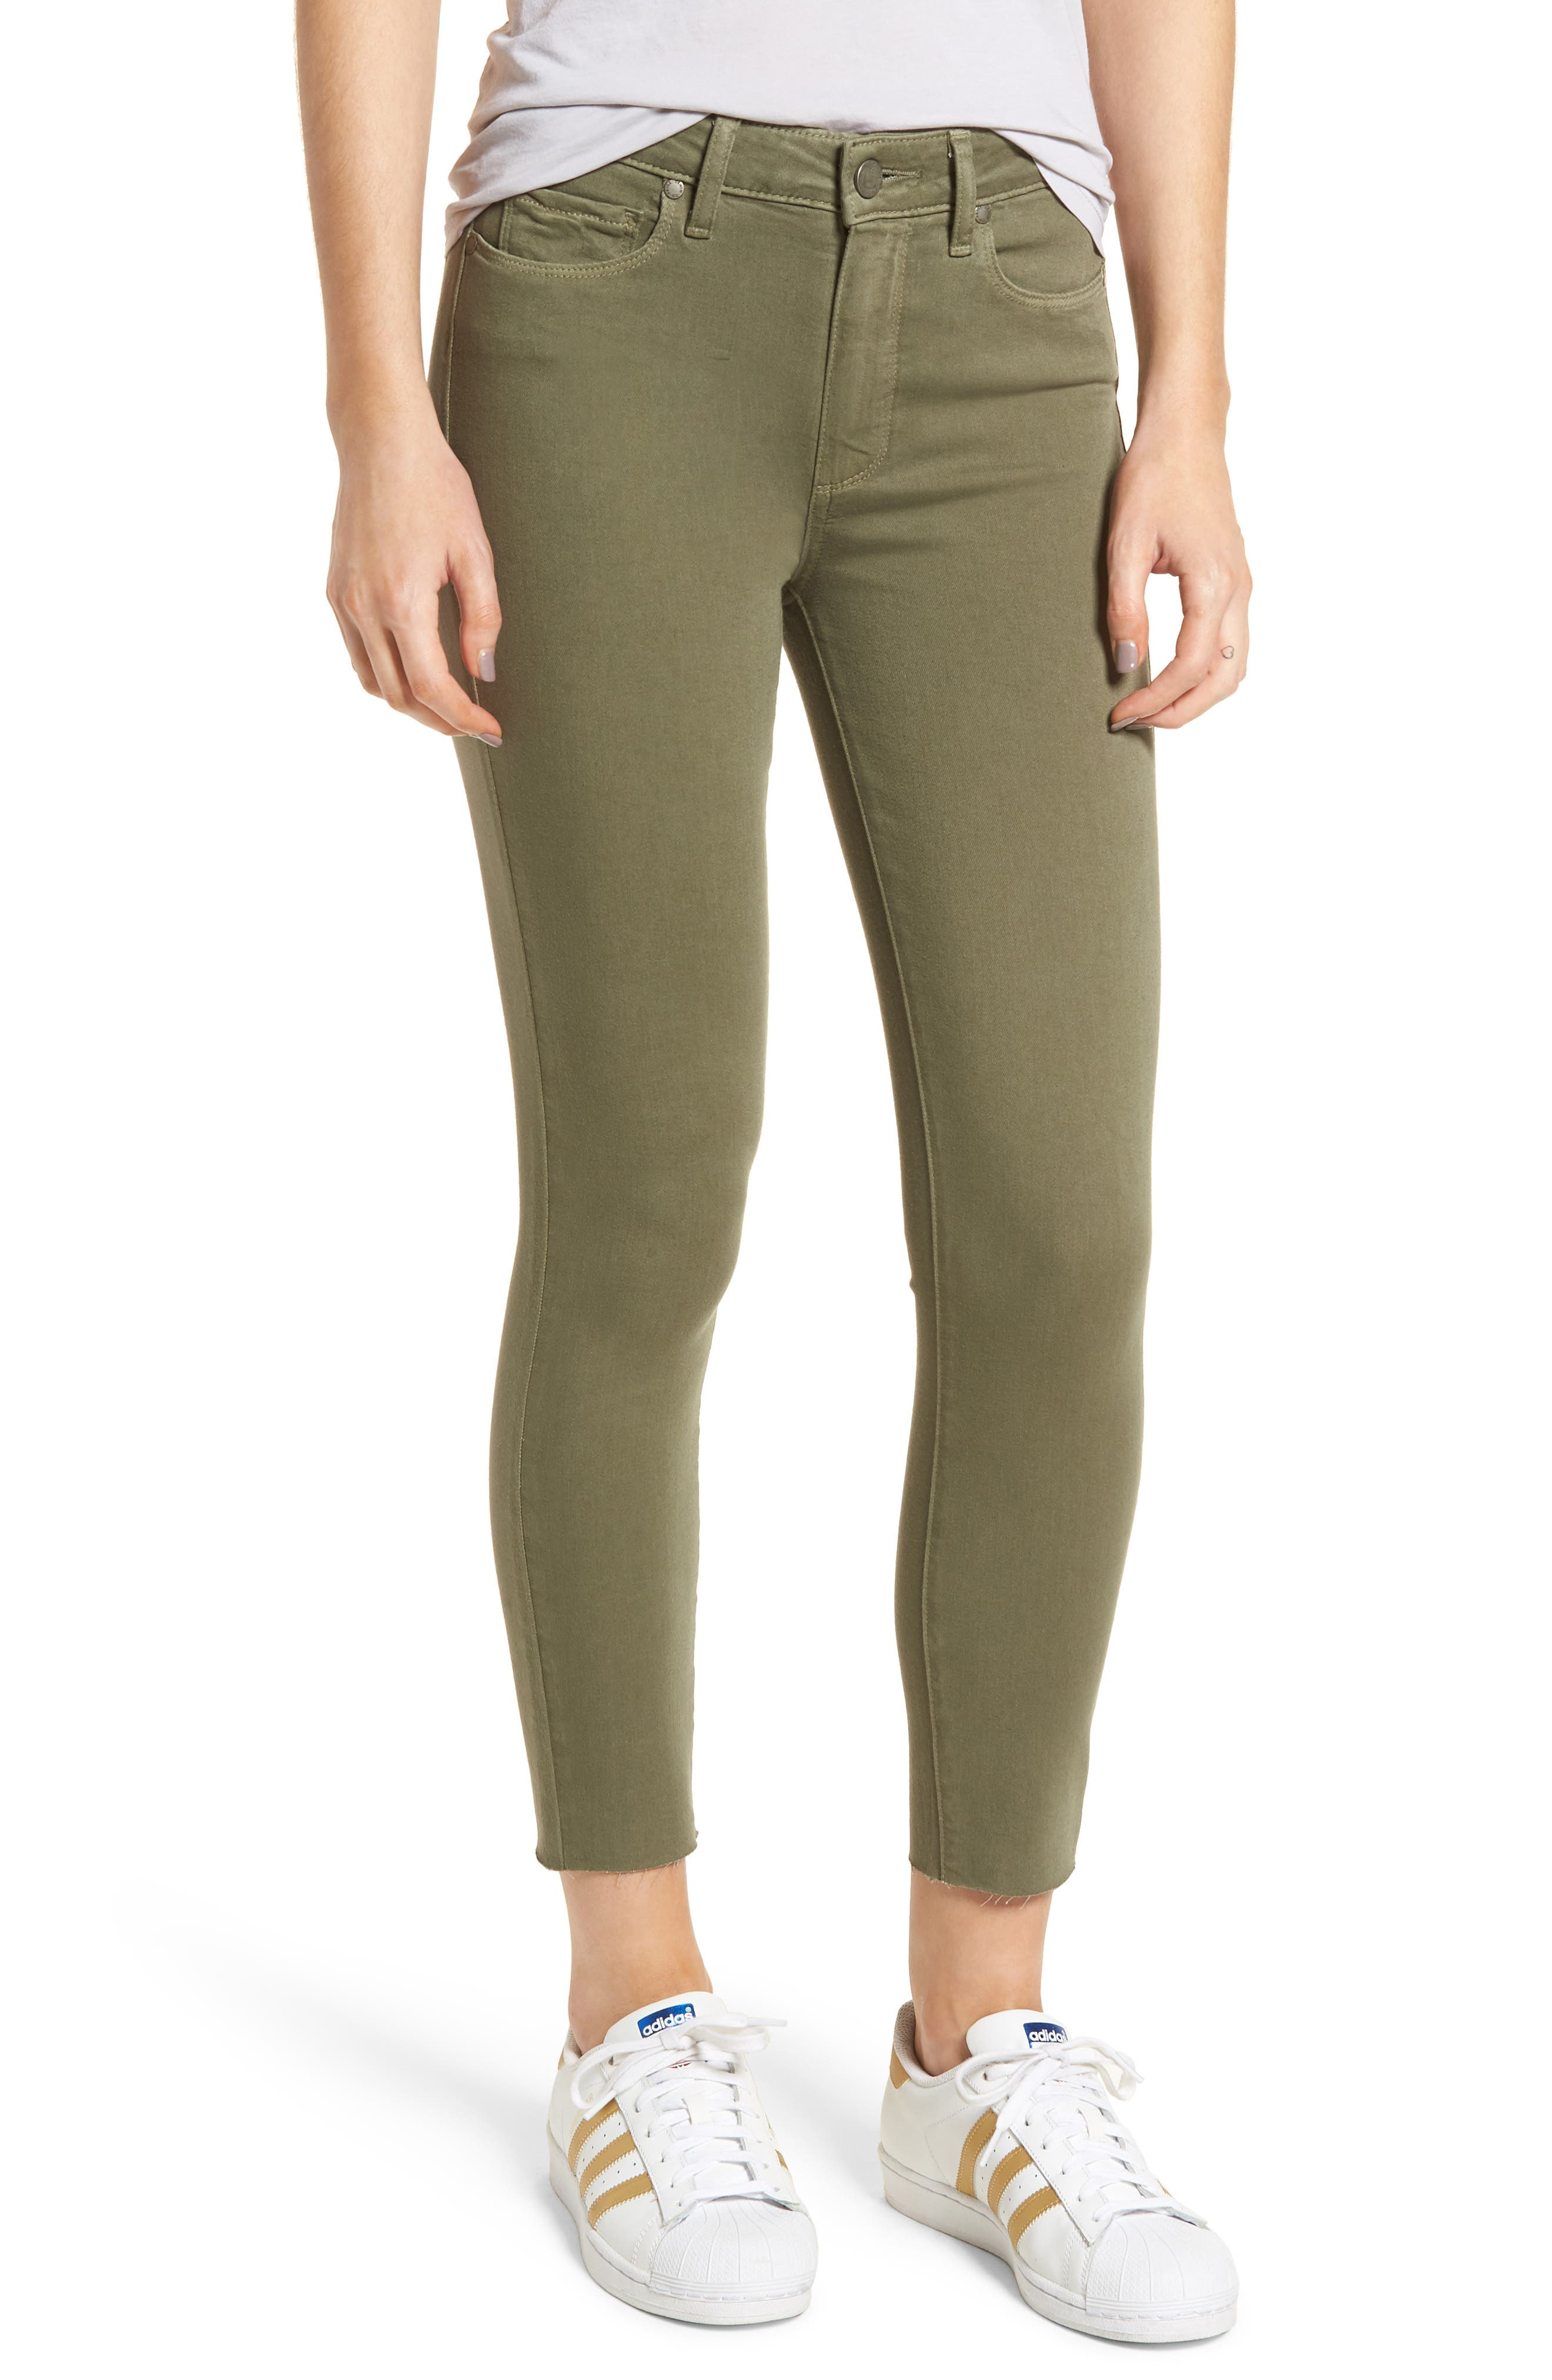 Hoxton High Waist Crop Skinny Jeans,                         Main,                         color, Vintage Green